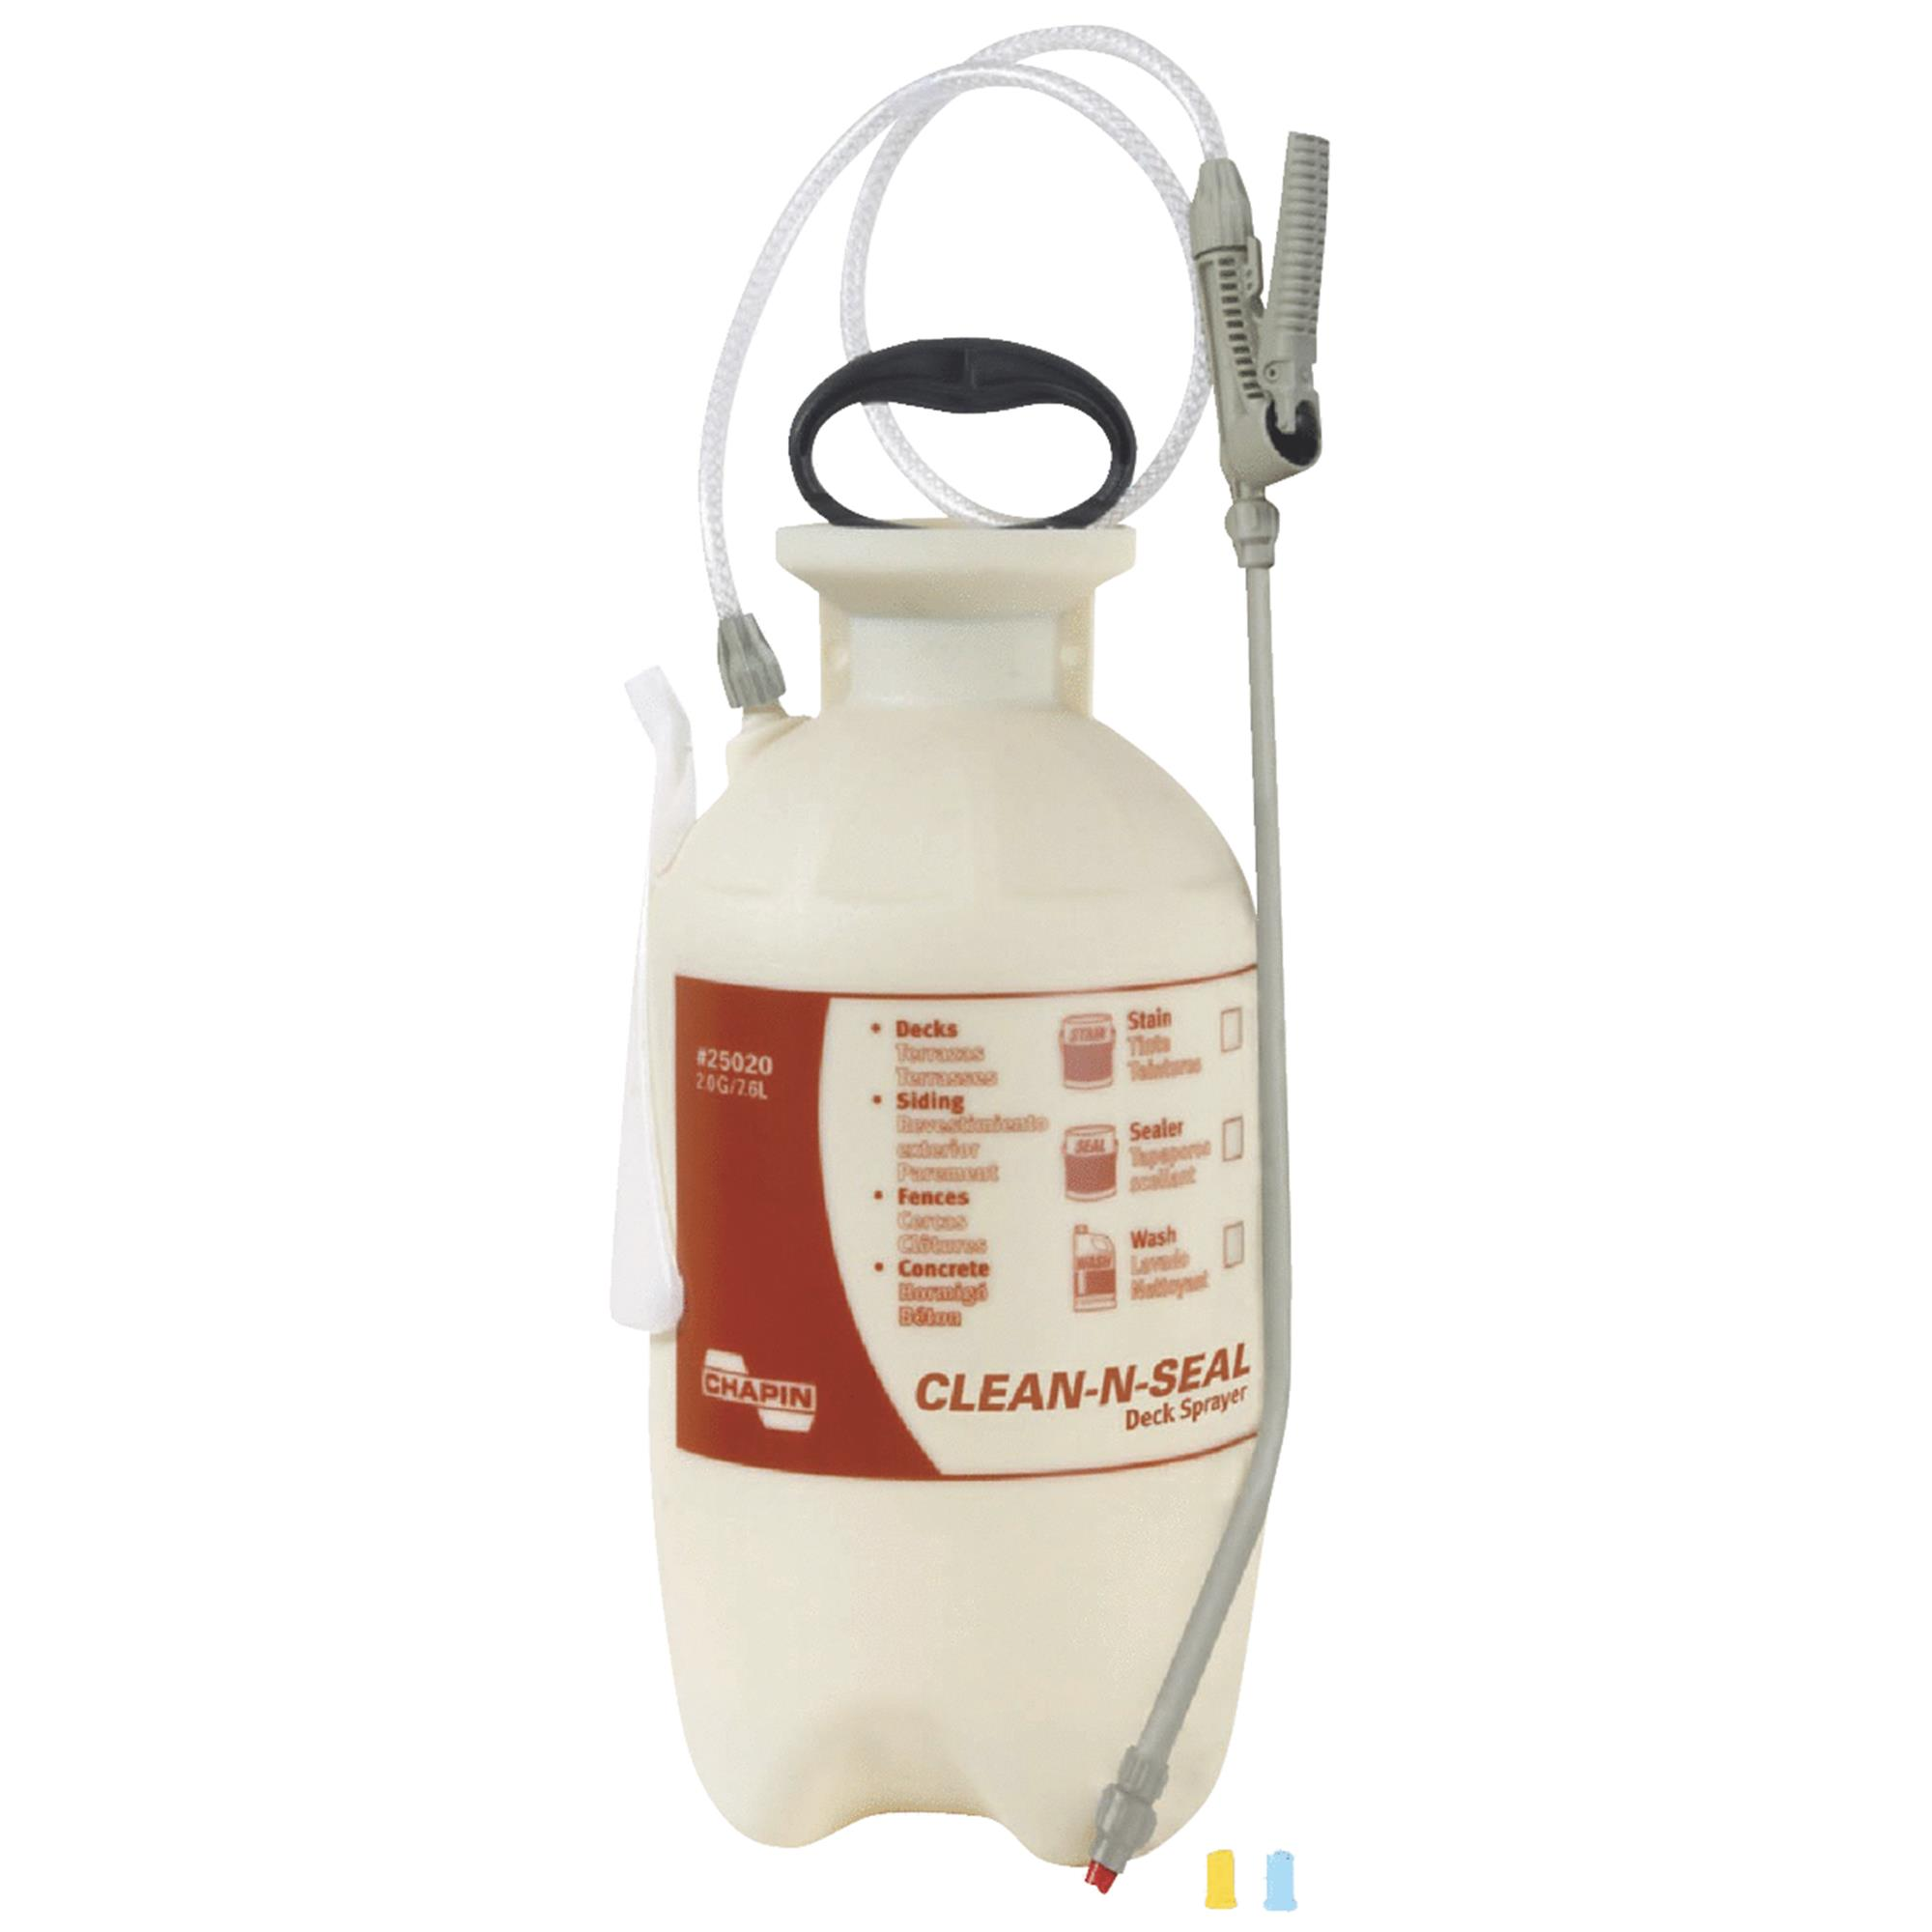 Chapin 25020 2-Gallon Clean N Seal Poly Deck, Fence and Patio Sprayer by Chapin Sprayers